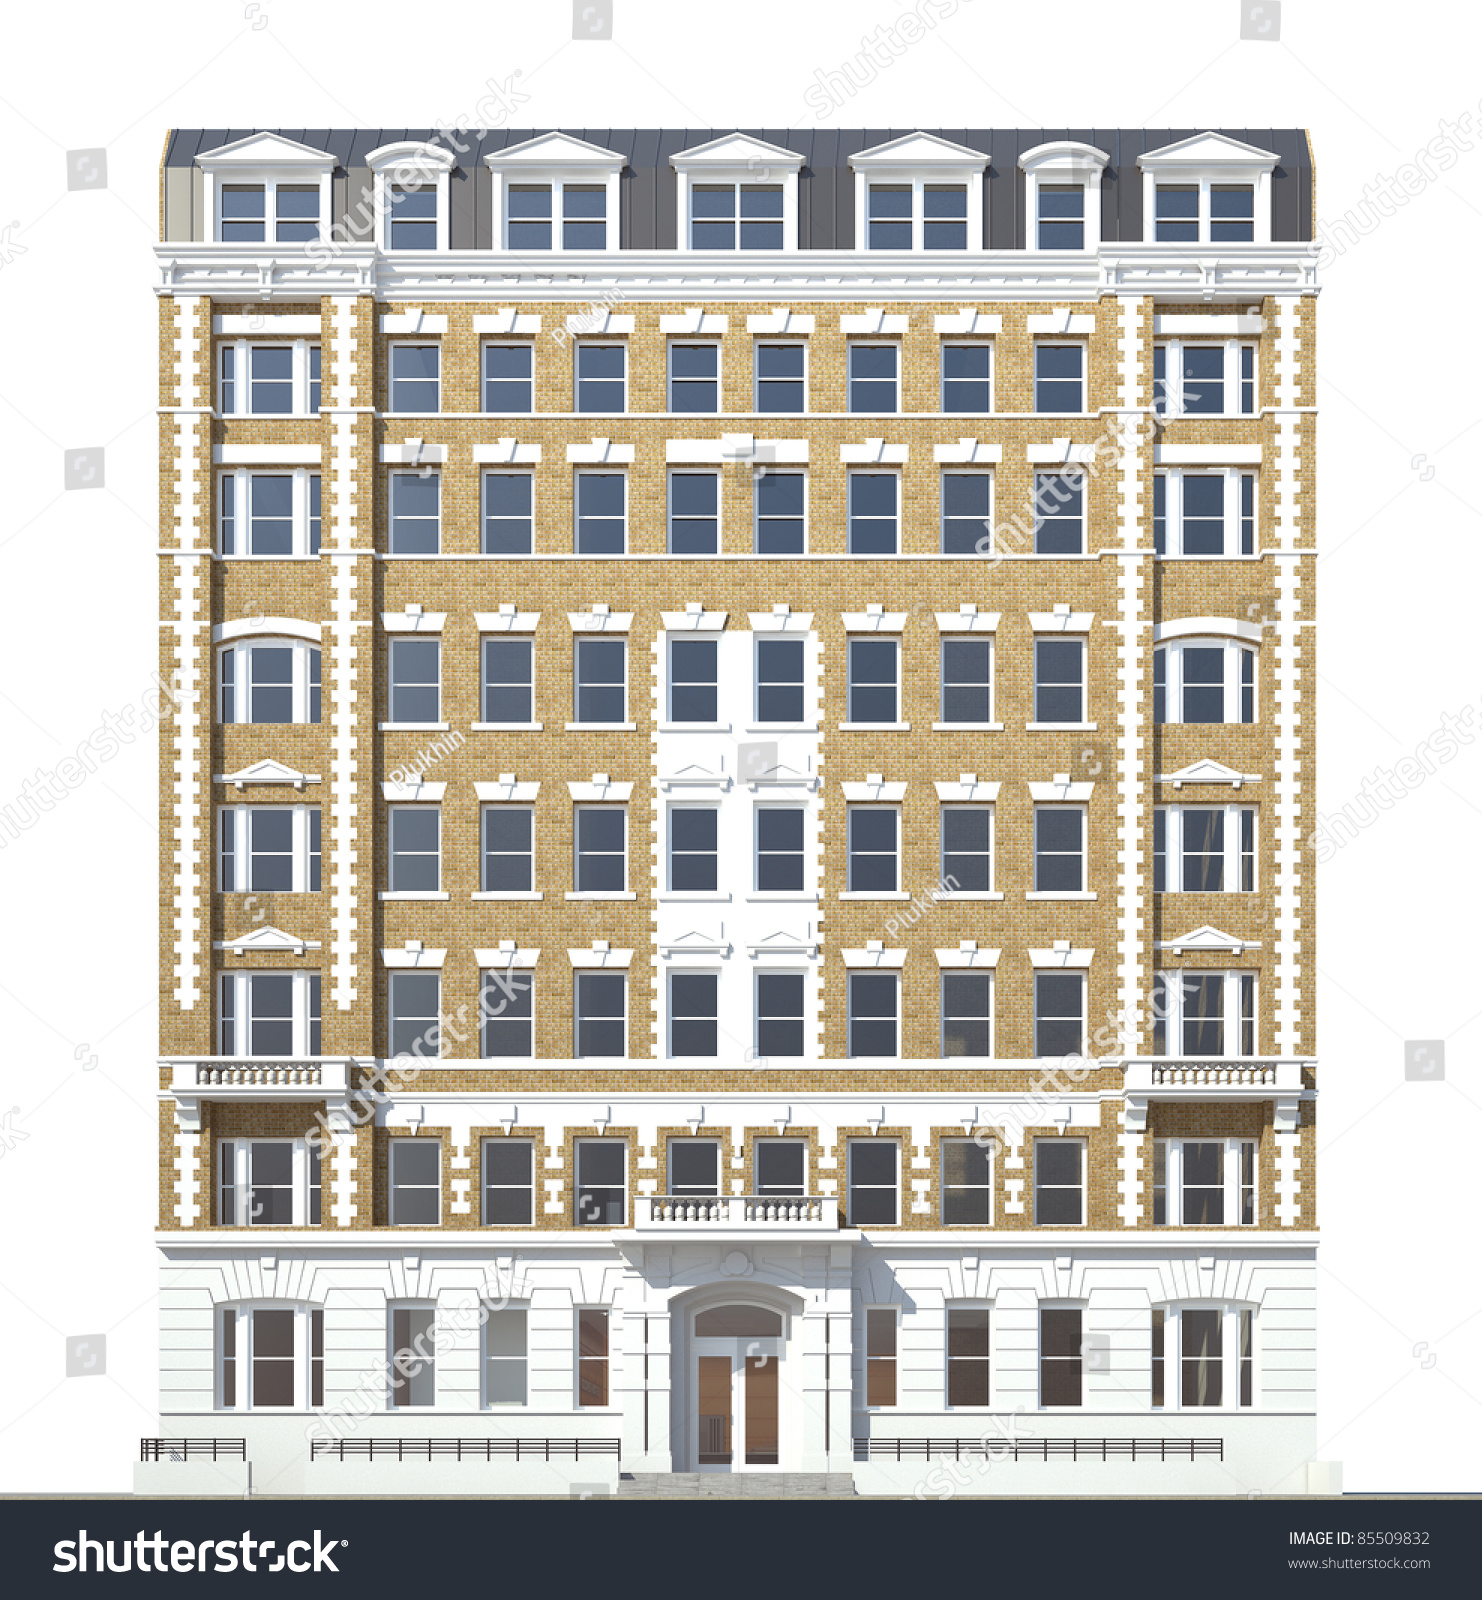 Front Elevation Of Hotel Building : Building viewed front elevation on white stock